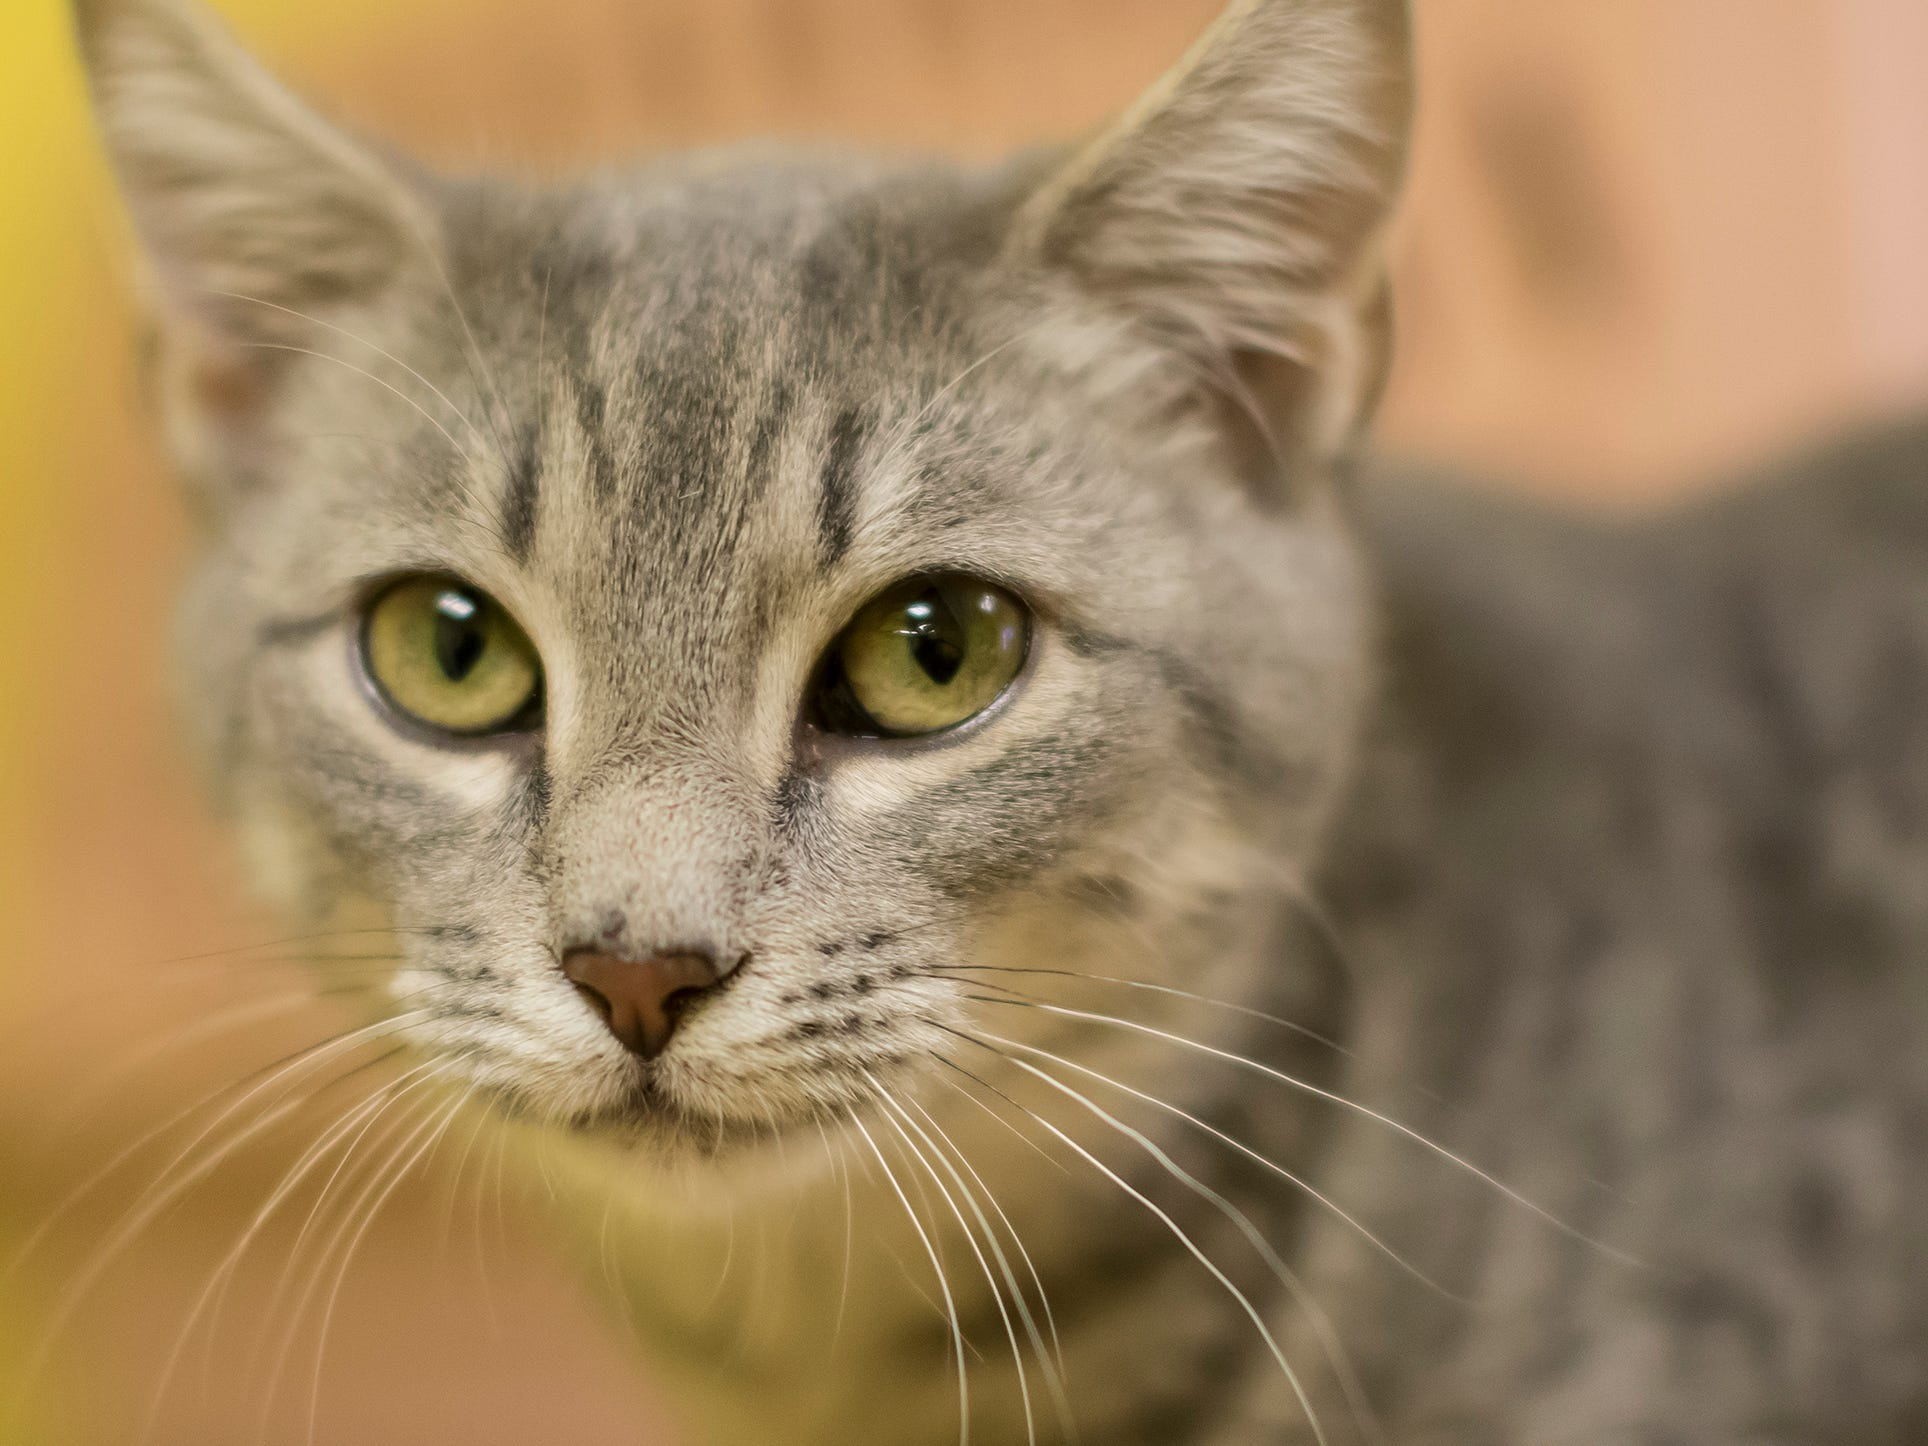 Ebie is active and likes playing with other cats. She's at the shelter with her sister Shay.